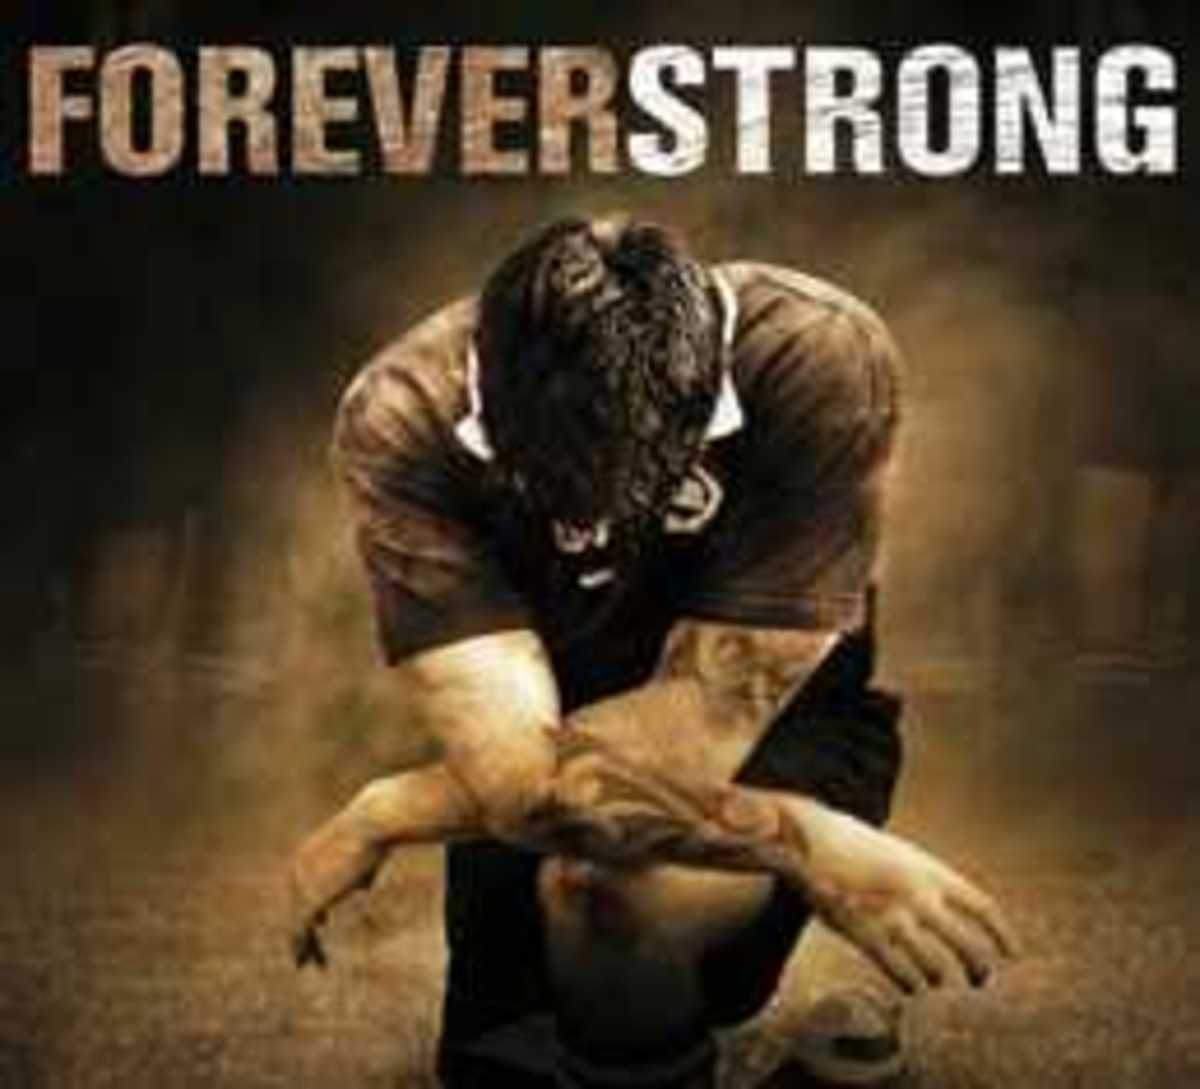 Forever Strong Movie Review - Not Really A Mormon Story